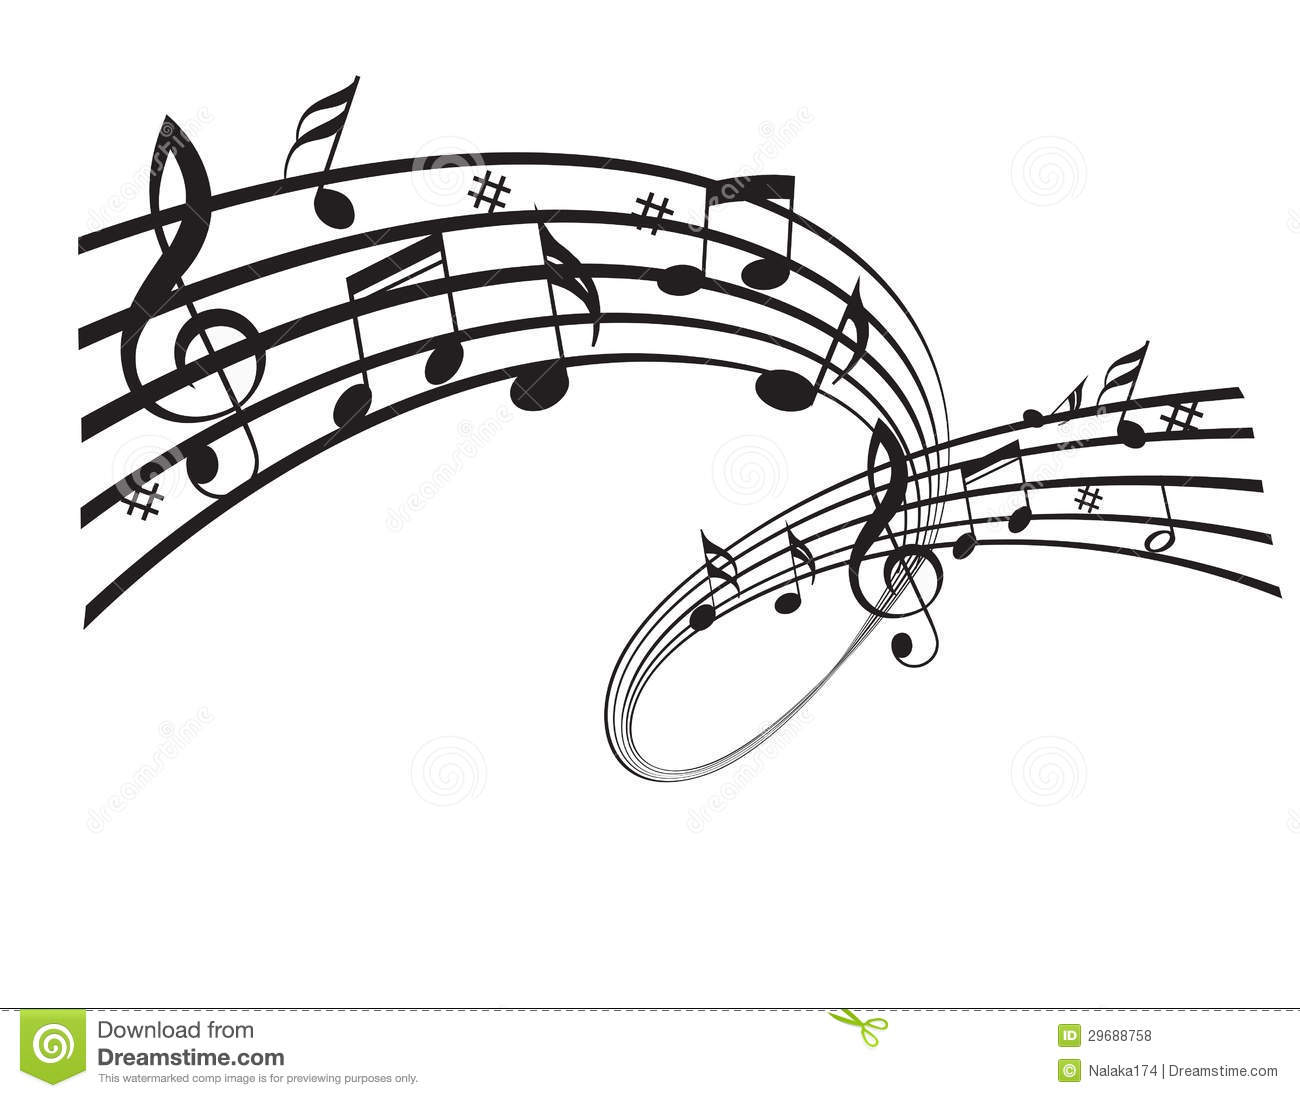 Music notes stock vector. Image of instrument, black